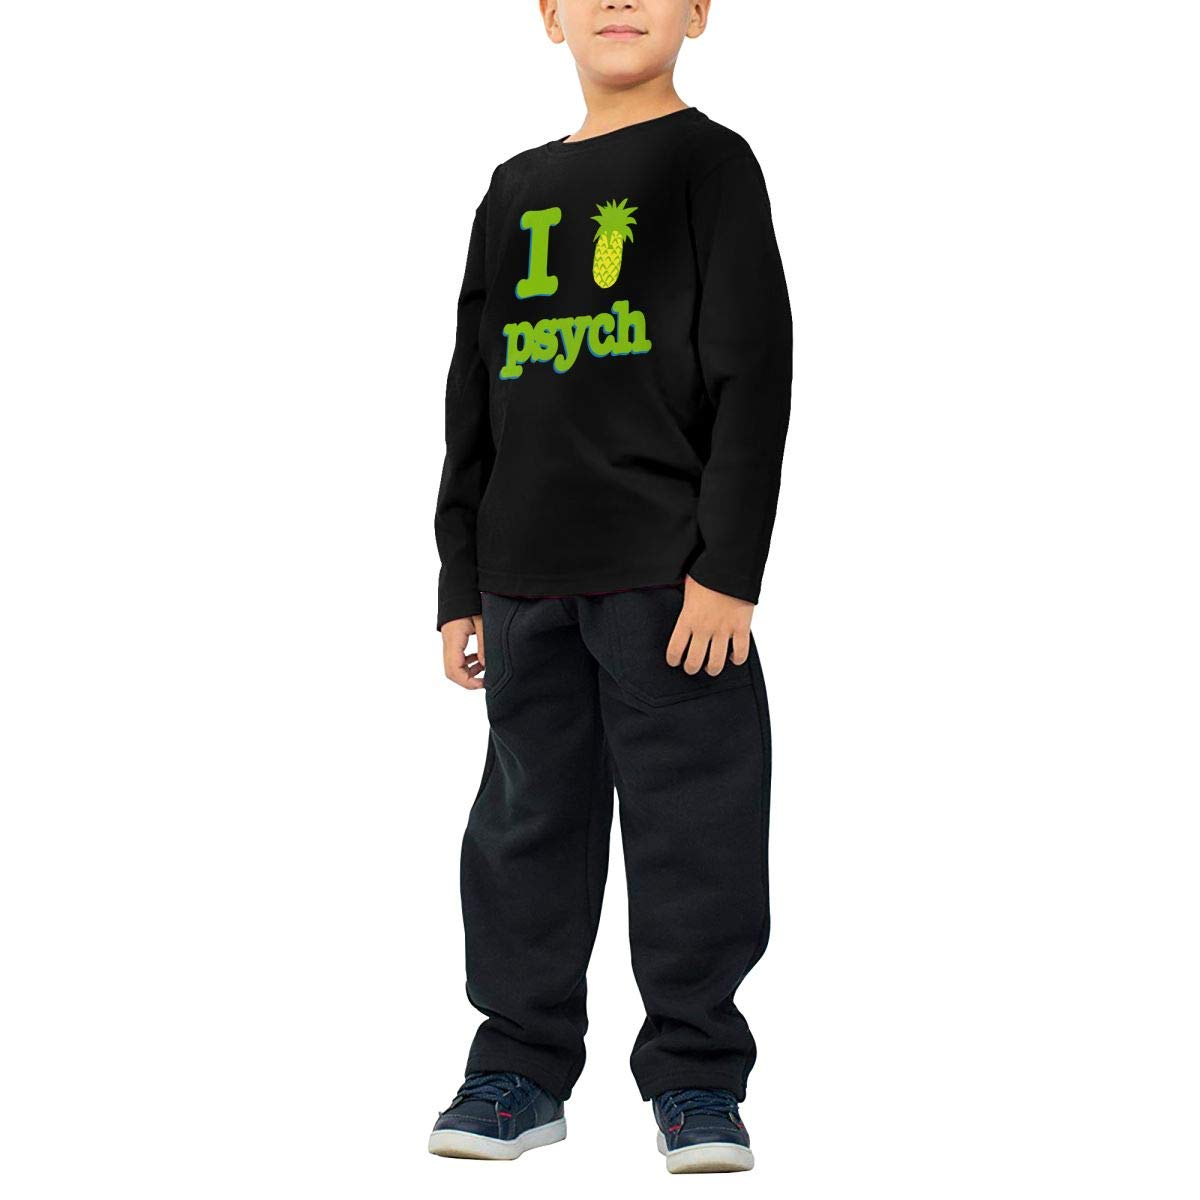 Baby Boys Childrens I Love Psych Printed Long Sleeve 100/% Cotton Infants Tops